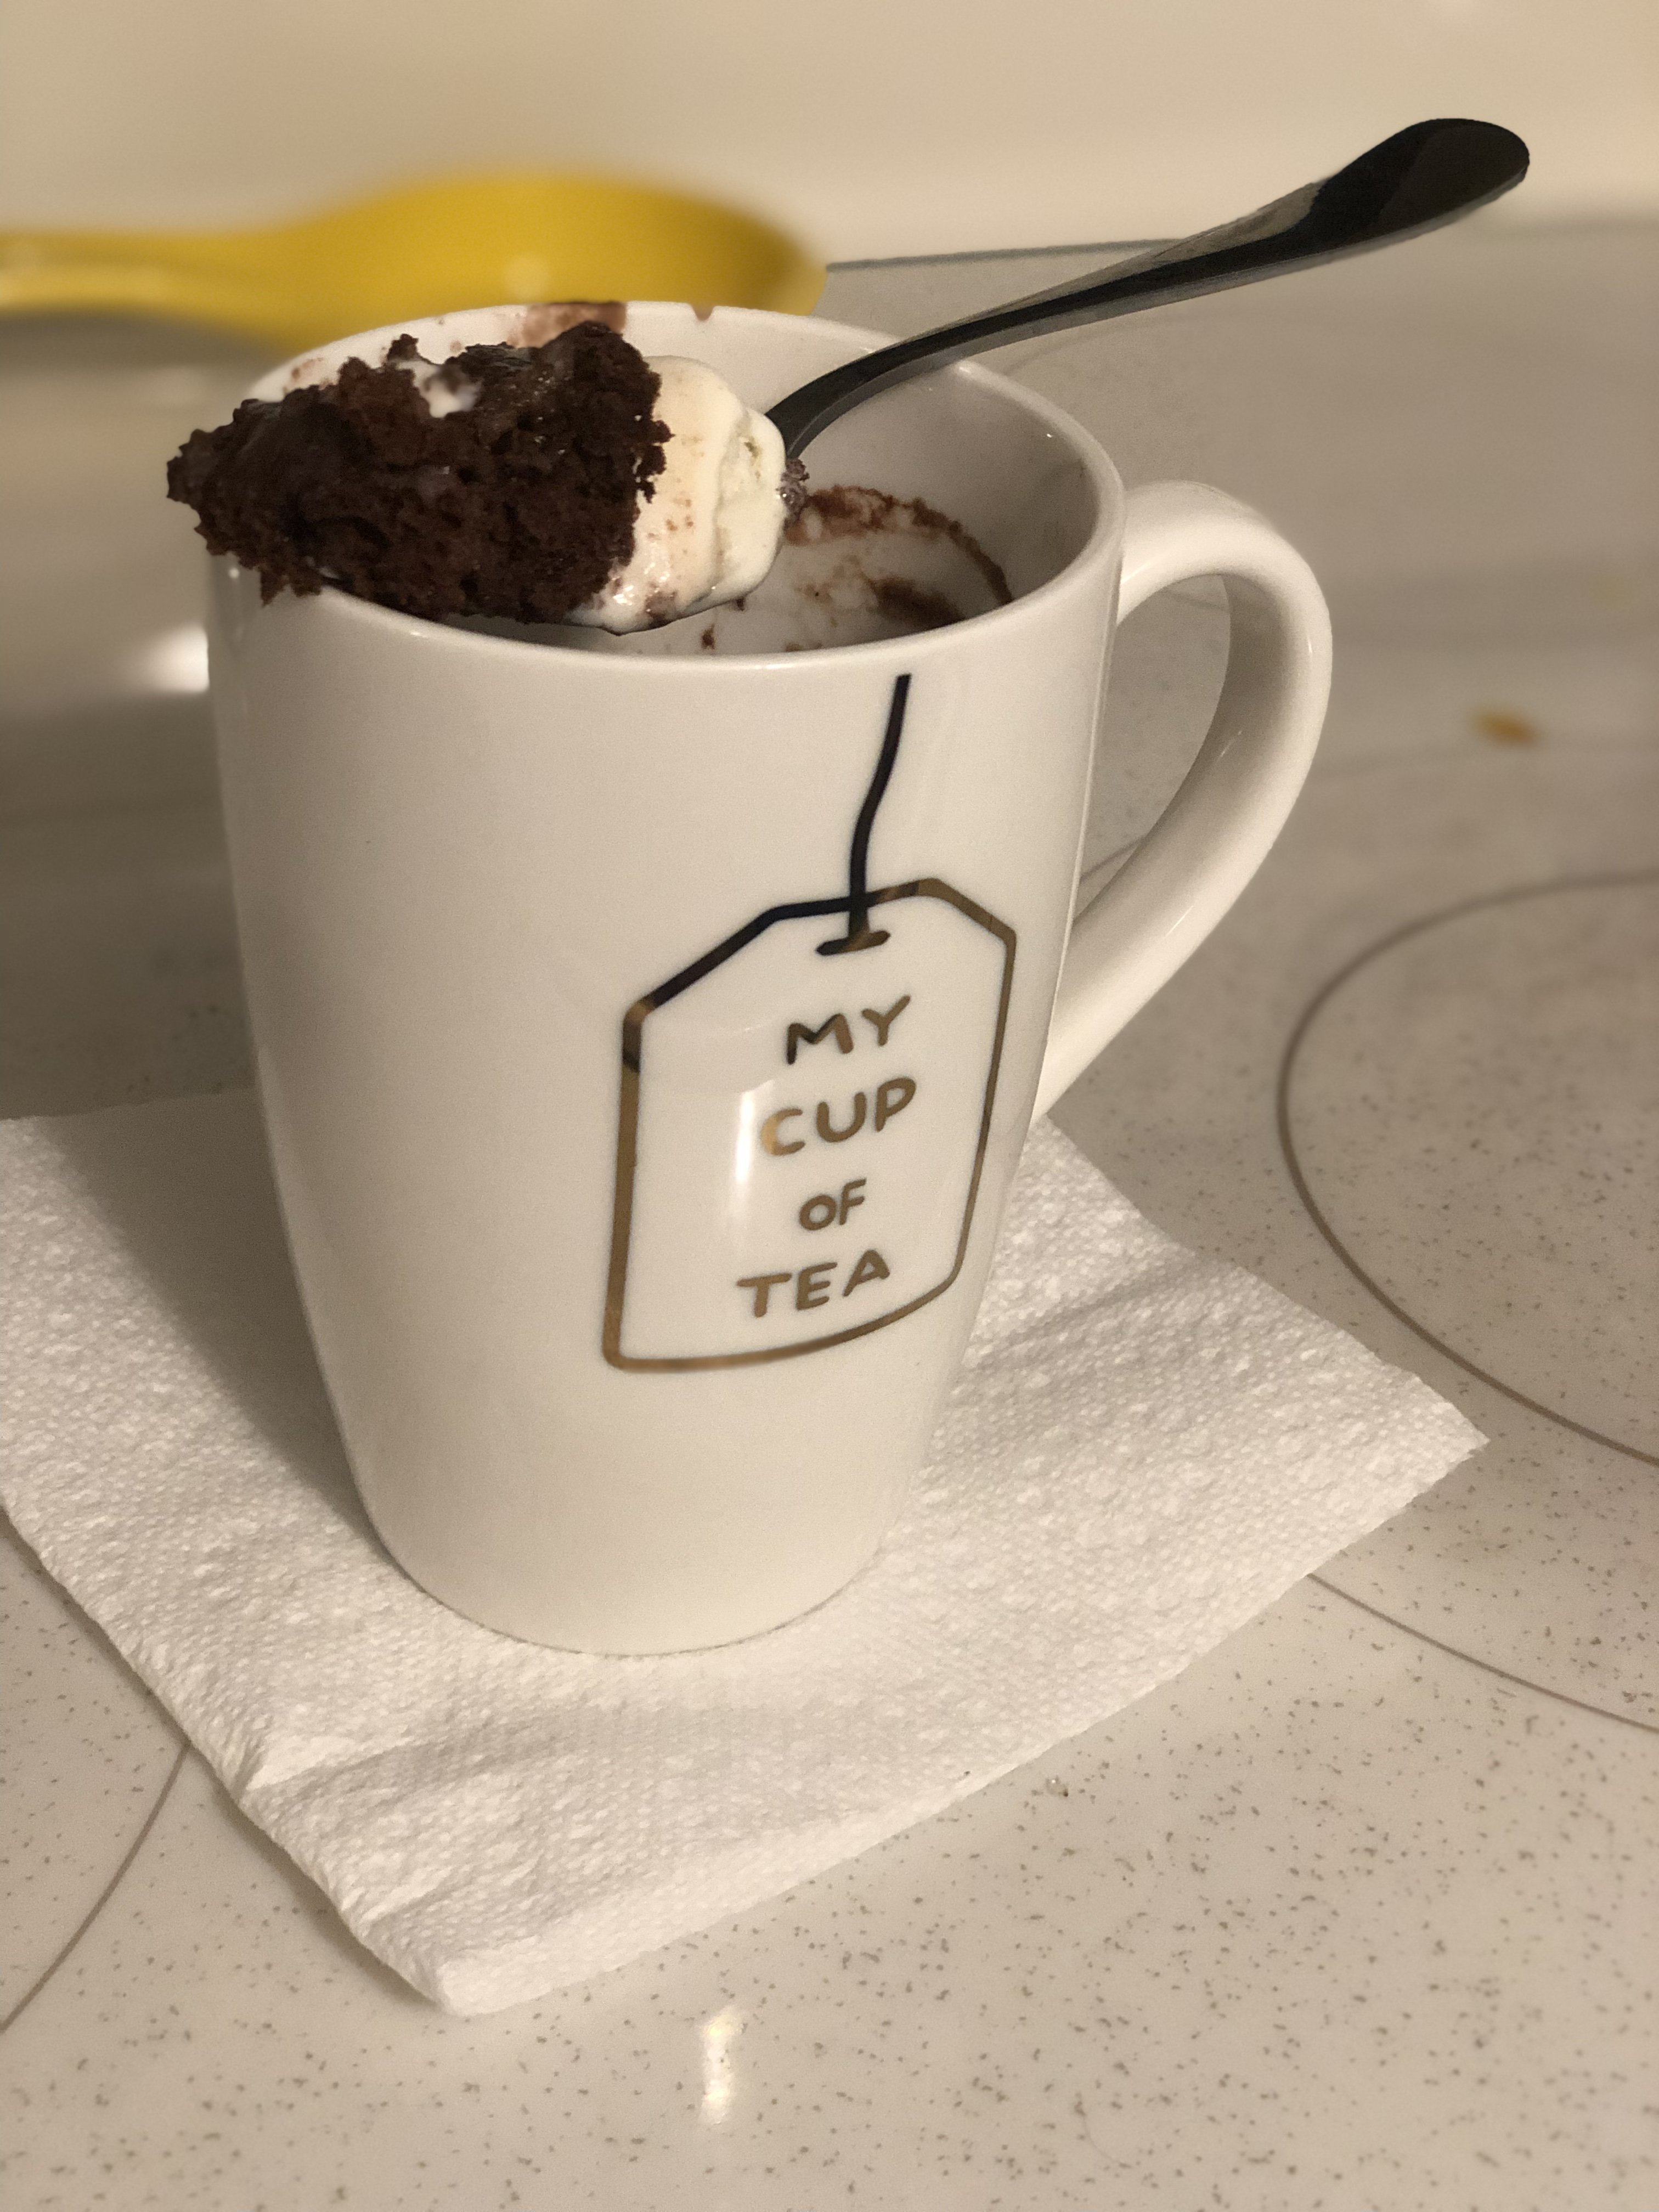 the finished dessert - chocolate and whip cream poking out of the mug